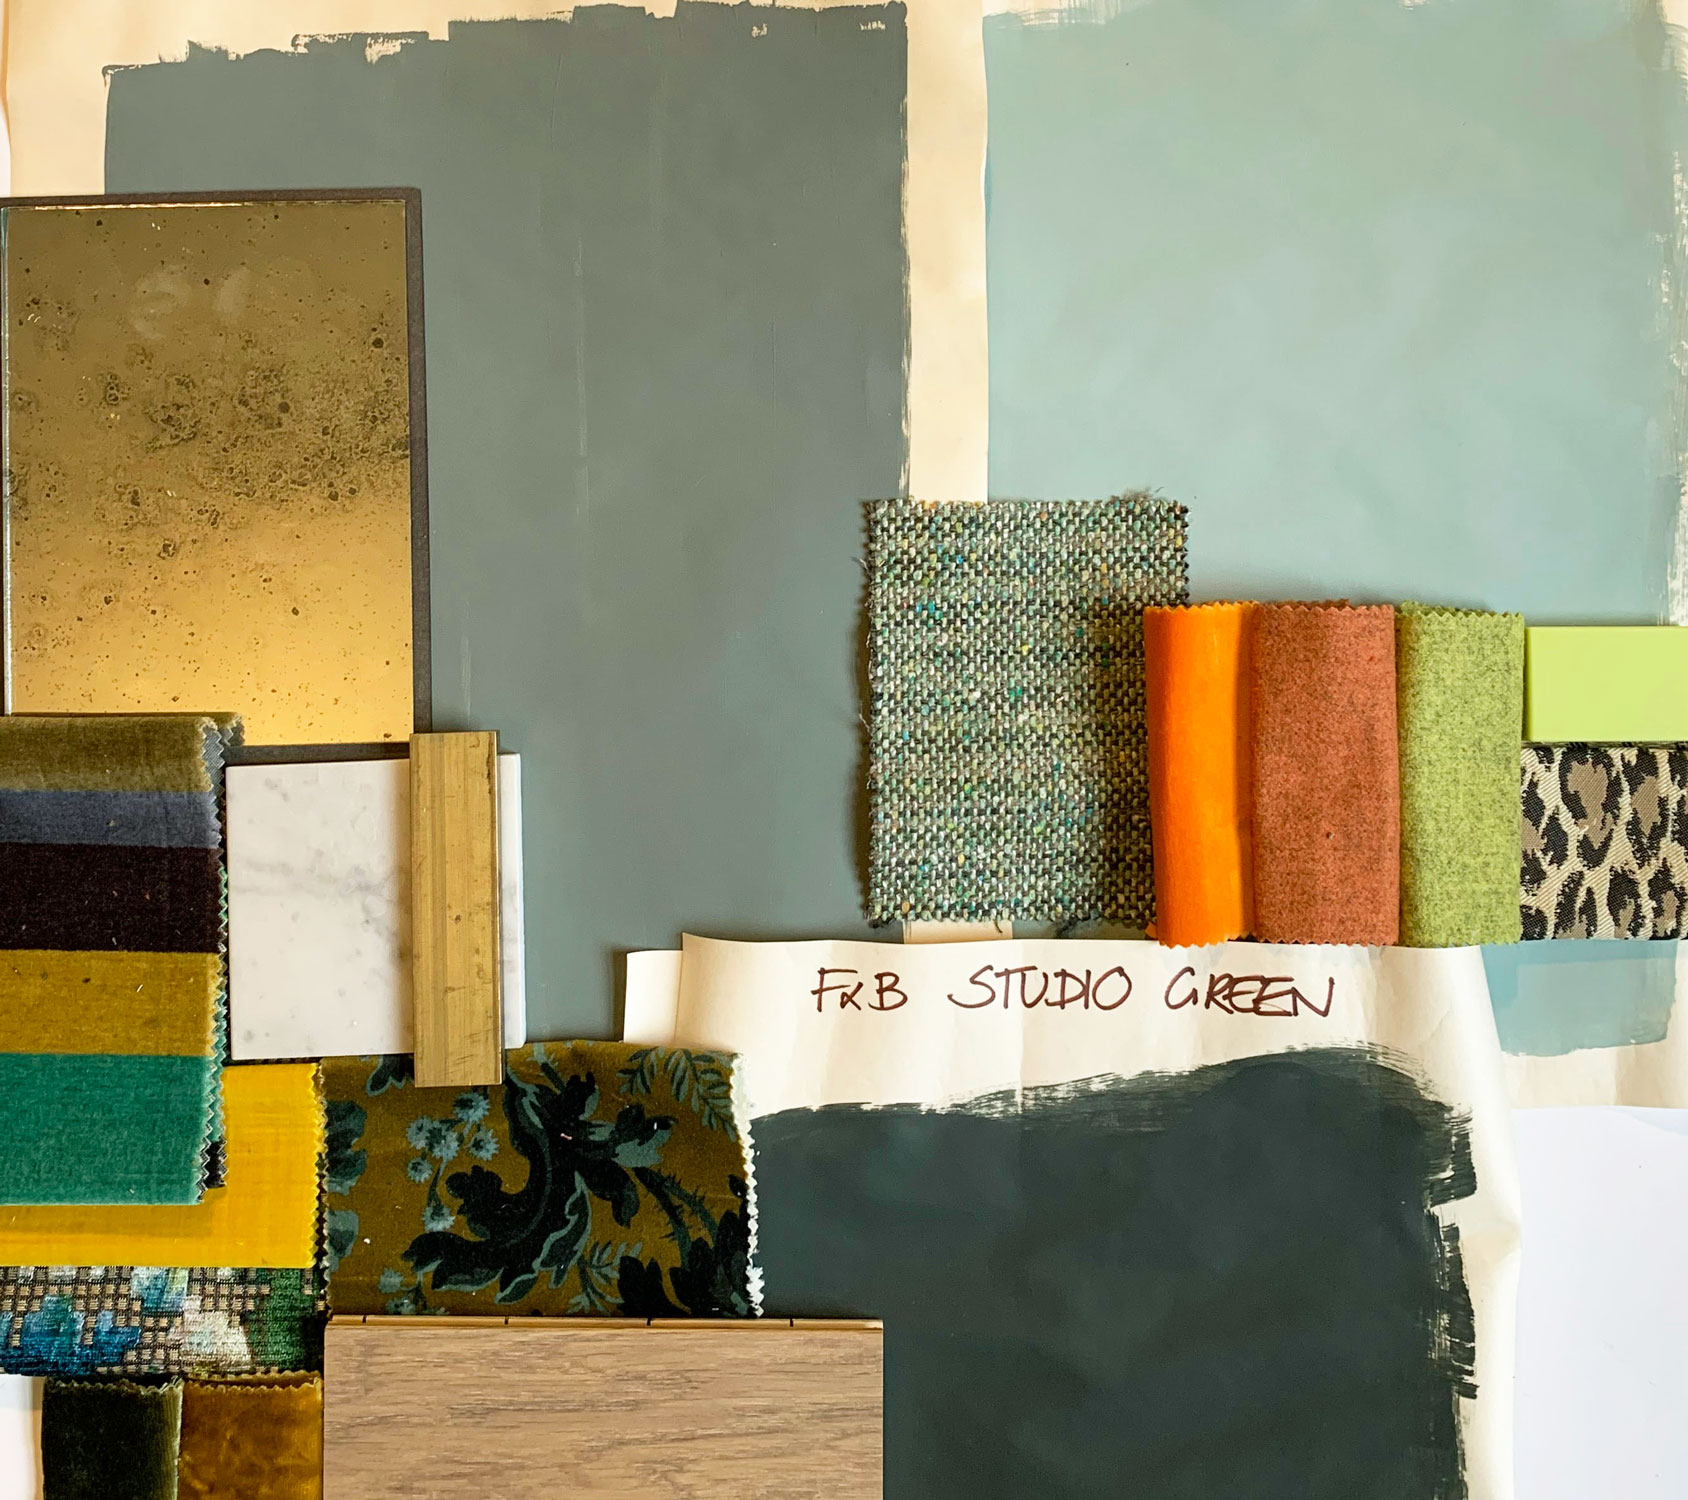 Materials used to create a moodboard for projects